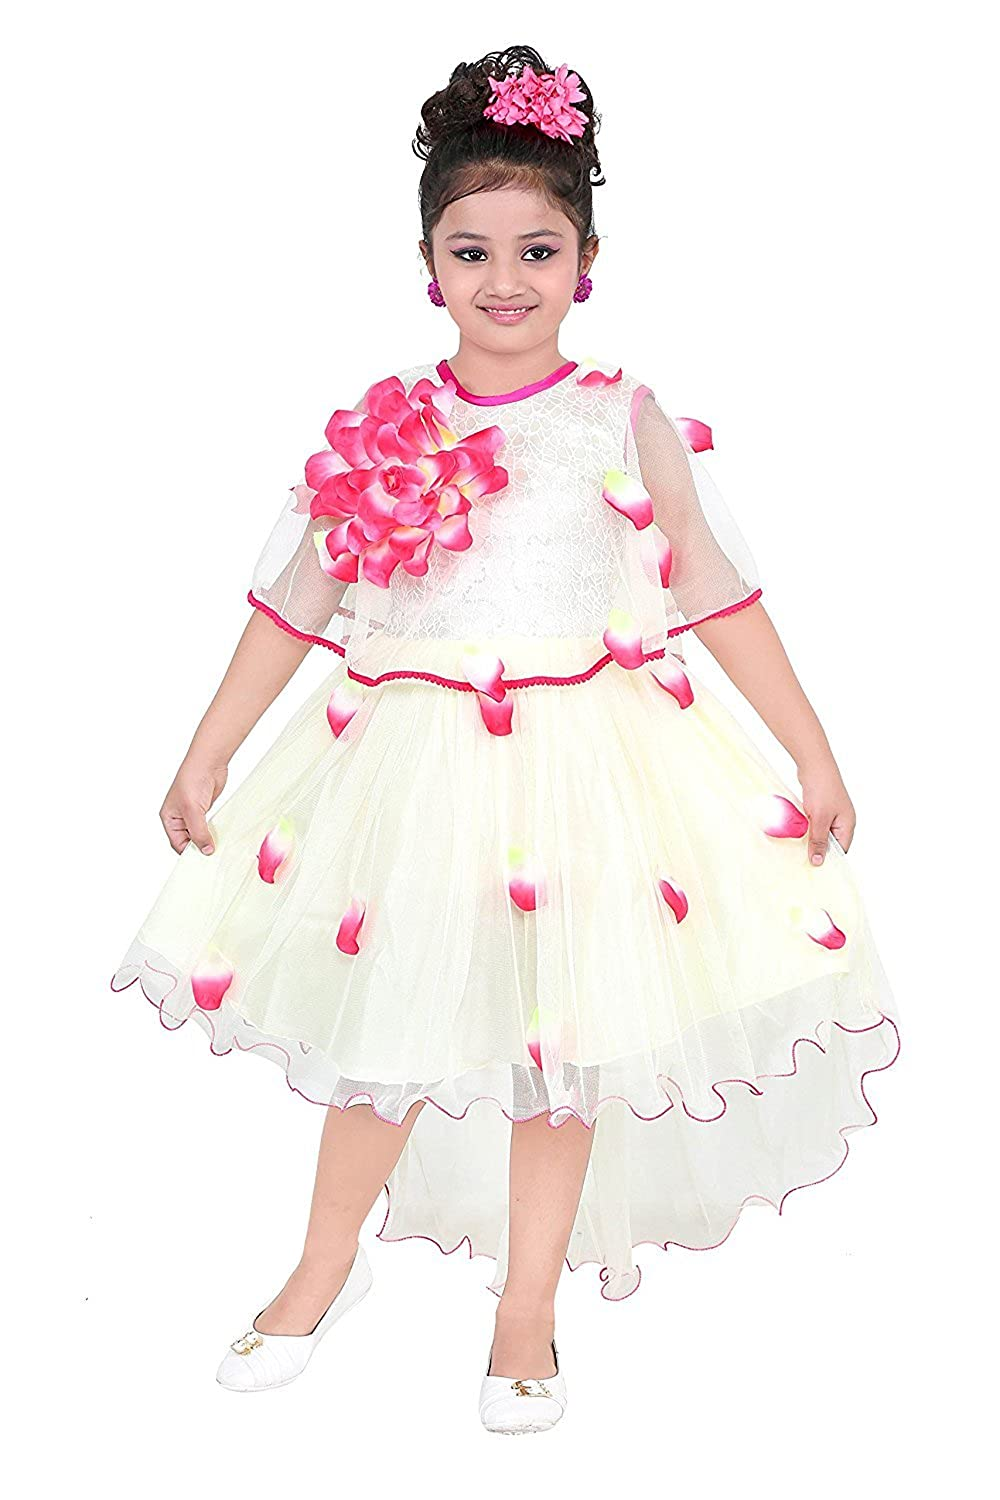 YAYAVAR Girls Net Made Off White & Lime Red Colored Casual/Party Wear Frock for Girls - Set of 01 from 02-08 Years